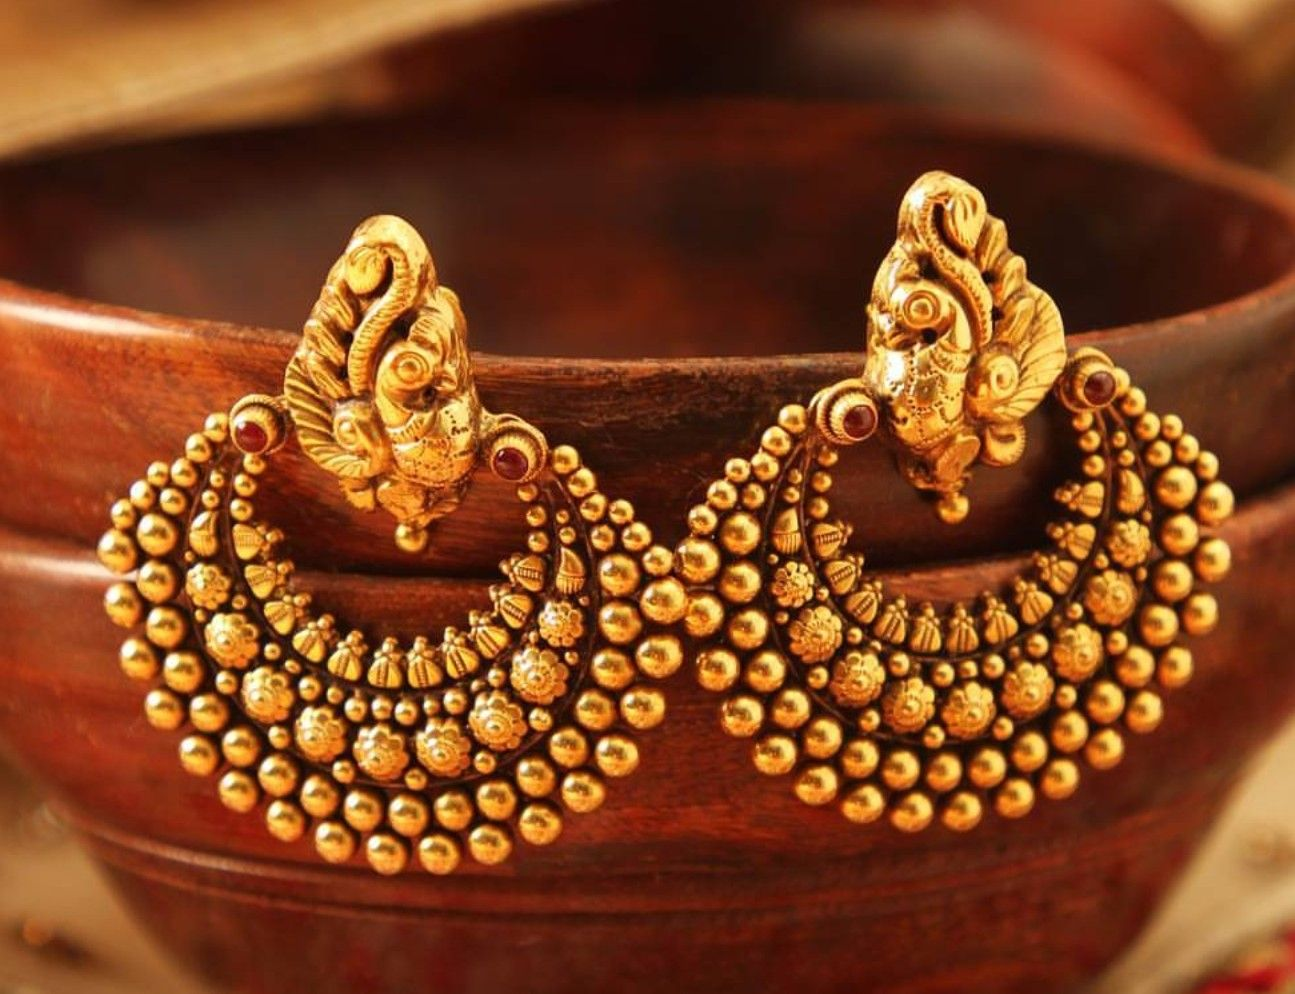 Pin by geetha gowda on Jewelry Mantra | Pinterest | Jewel, India ...